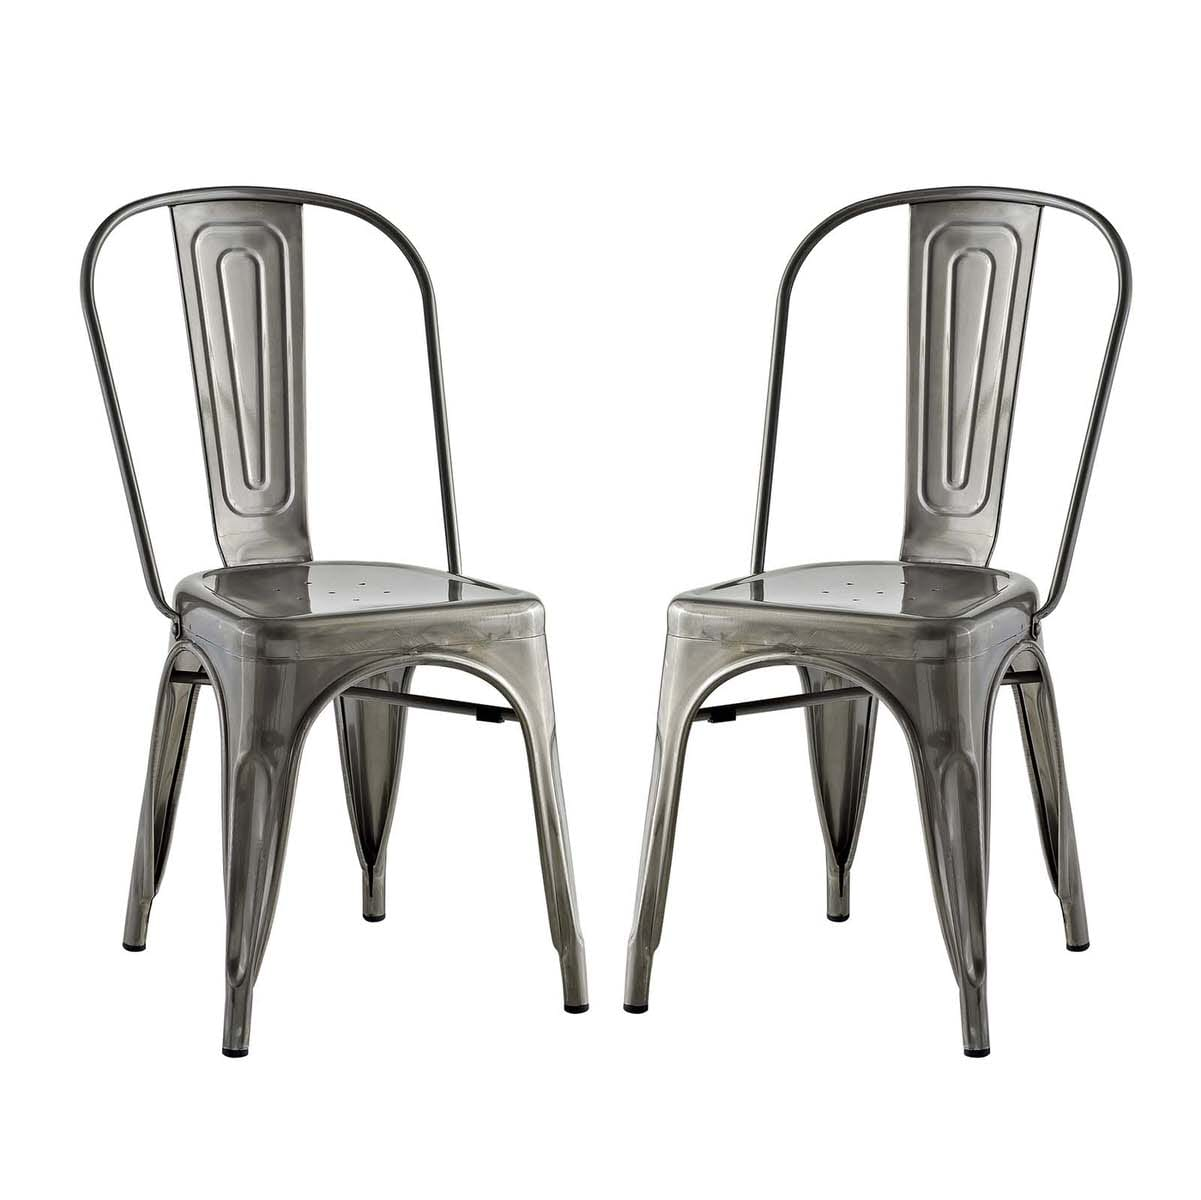 Promenade Set Of 2 Dining Side Chair Gunmetal By Modern Living